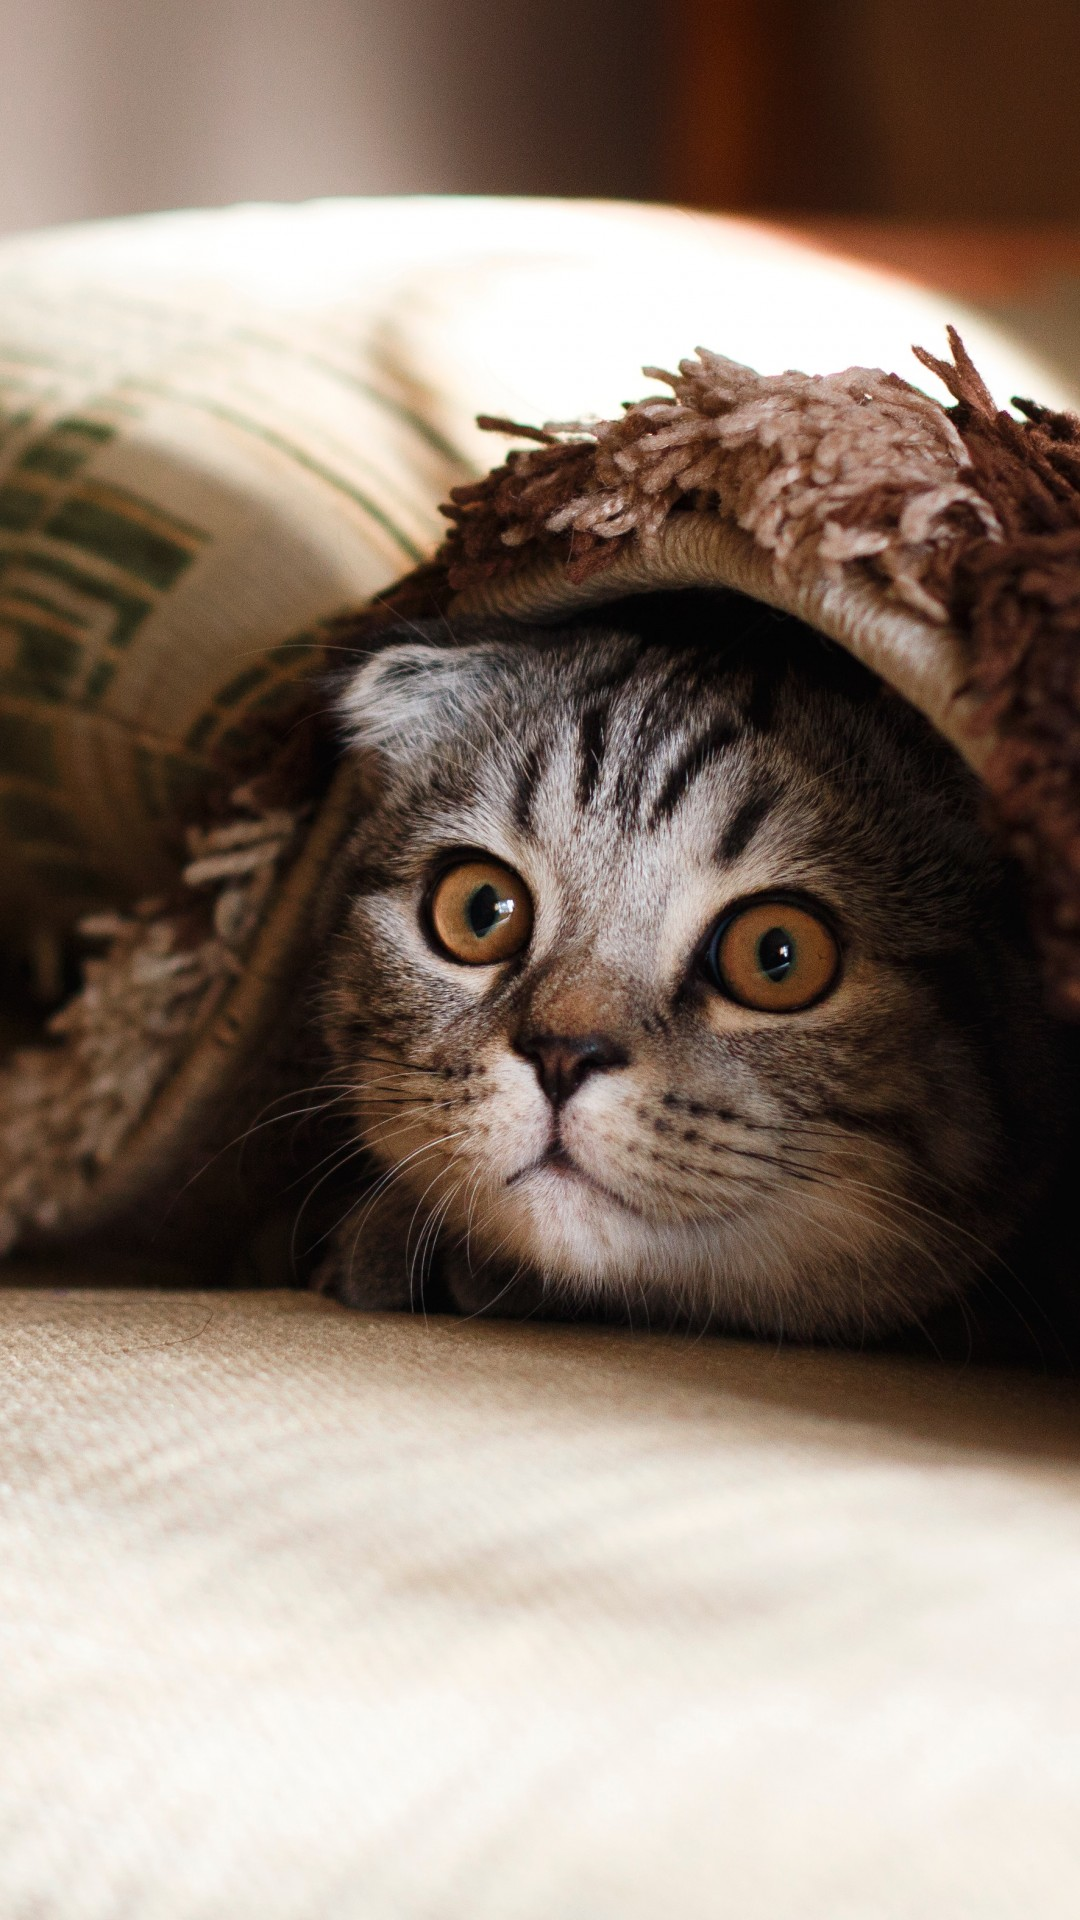 Cute Quotes Wallpapers Pinterest Wallpaper Cat Funny Animals 4k Animals 18888